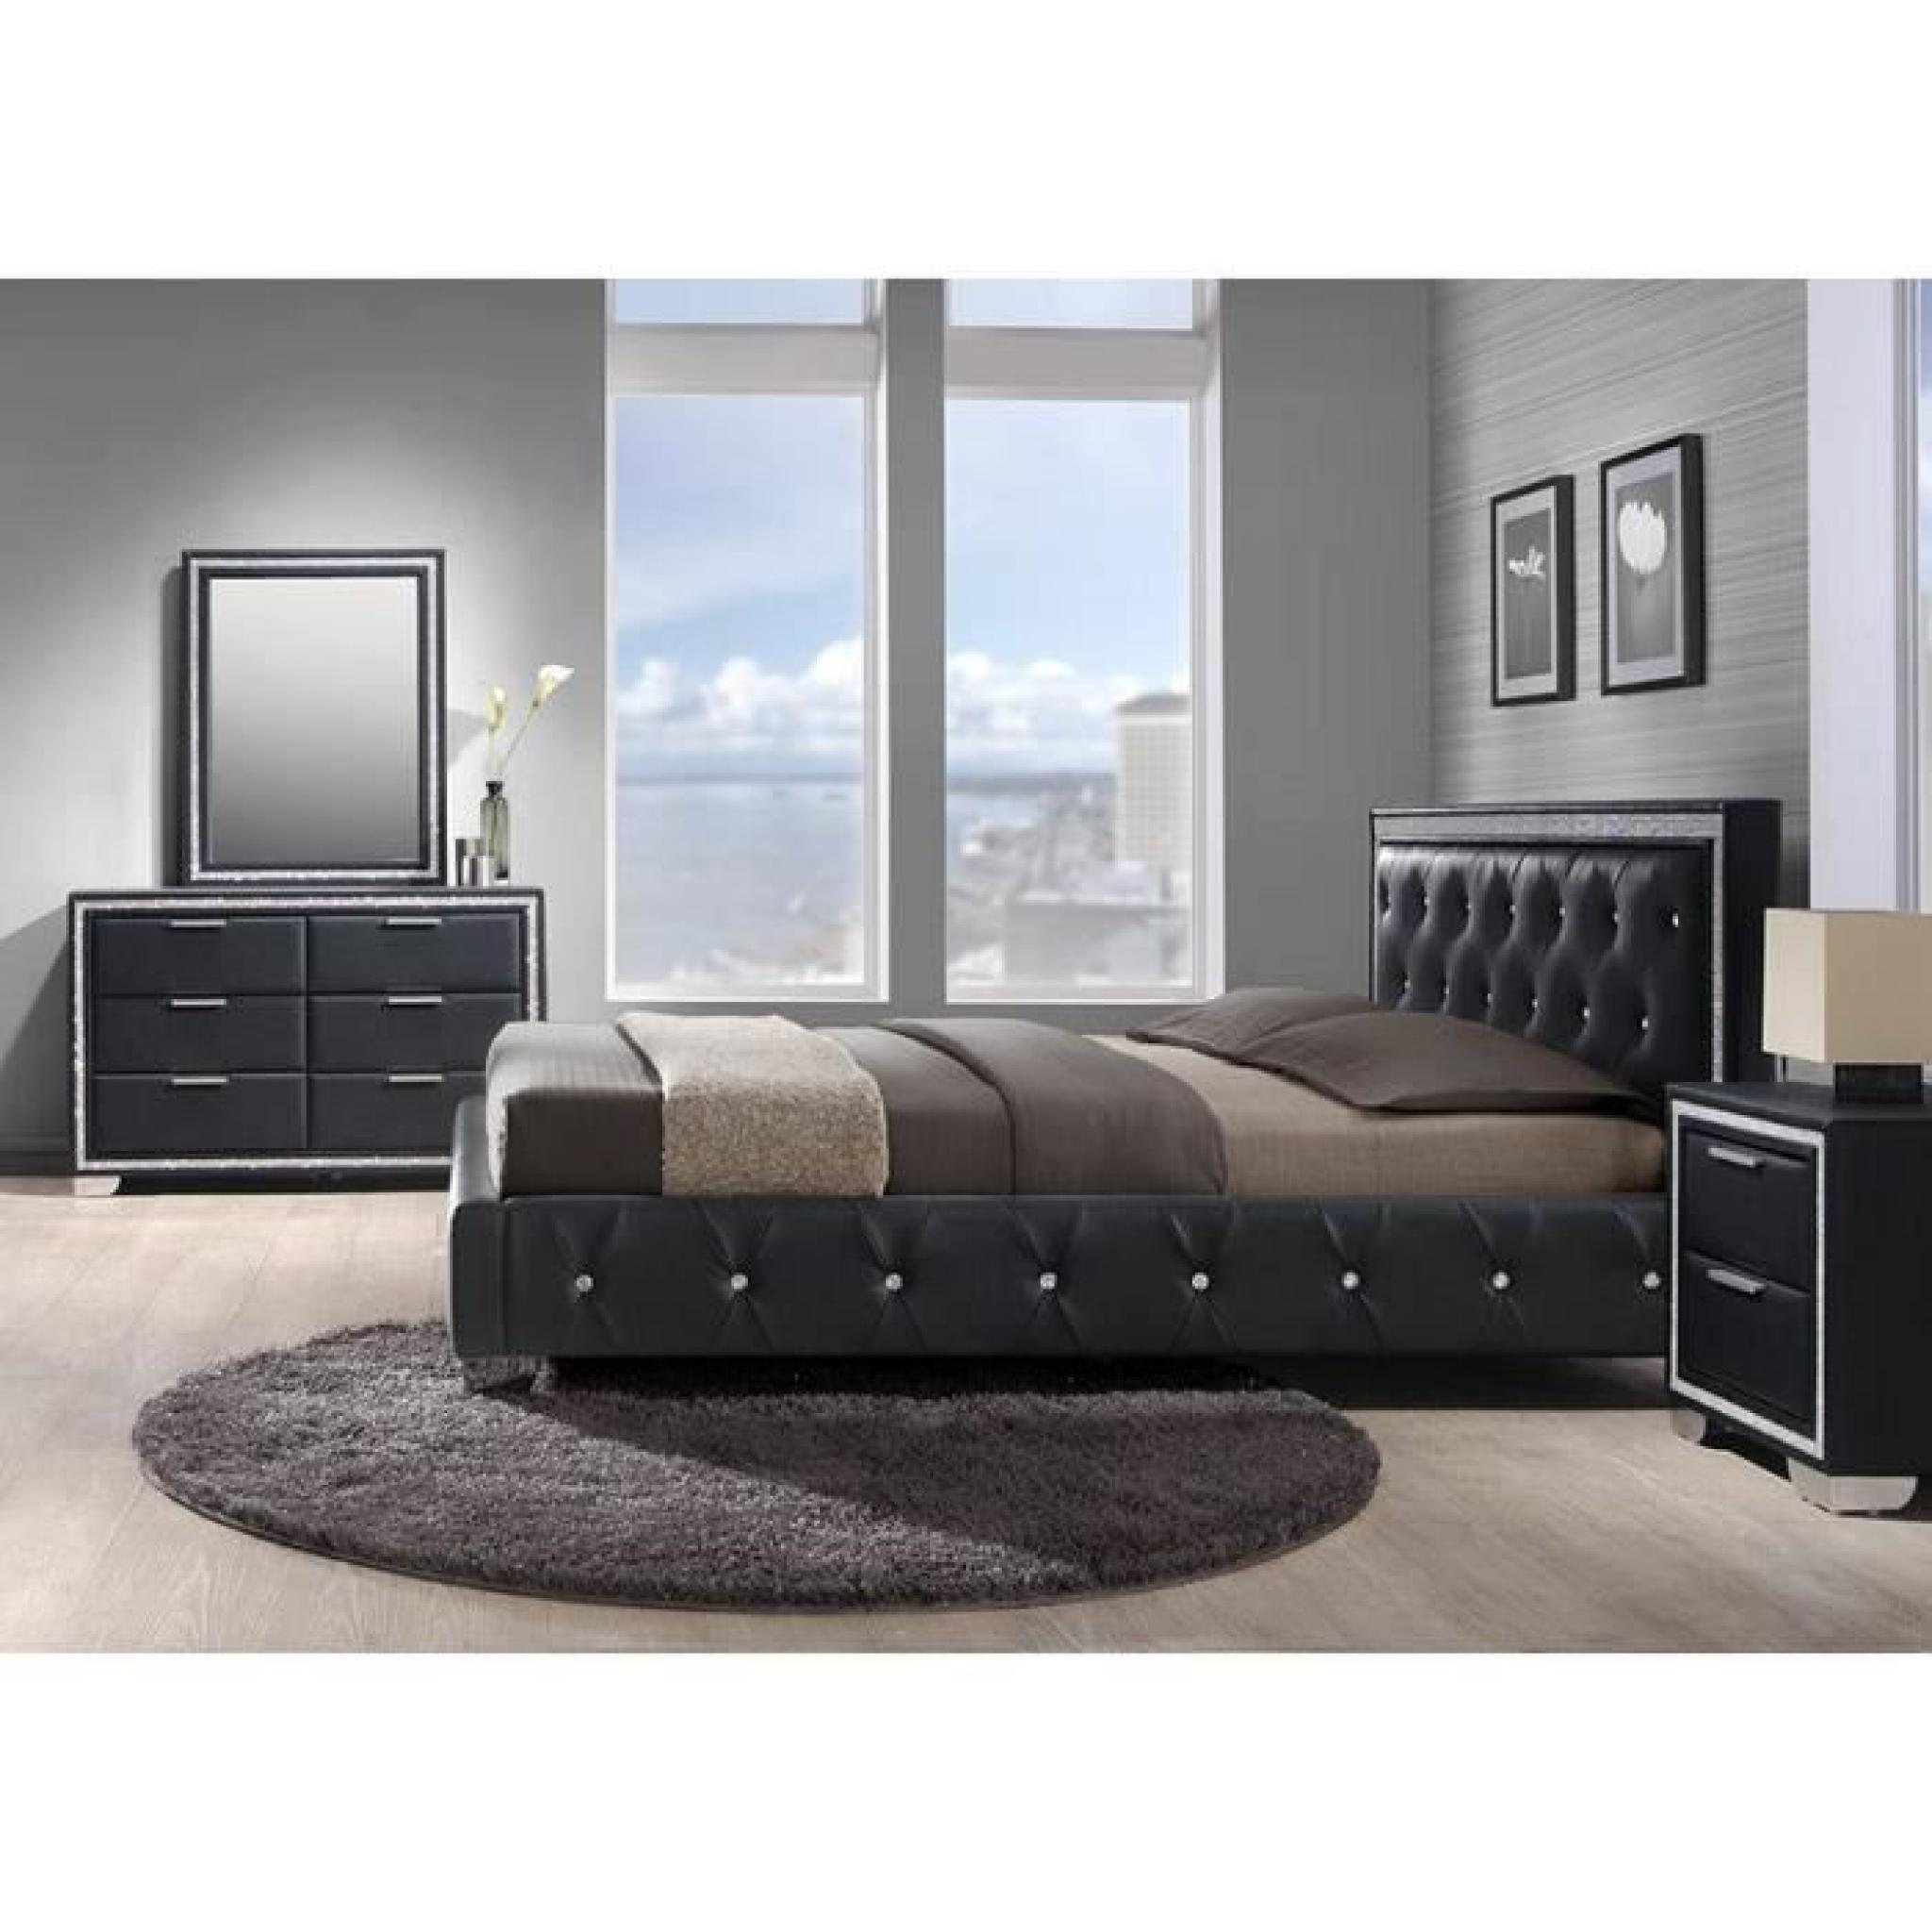 commode simili noir 6 tiroirs avec miroir cladis achat vente commode pas cher couleur et. Black Bedroom Furniture Sets. Home Design Ideas